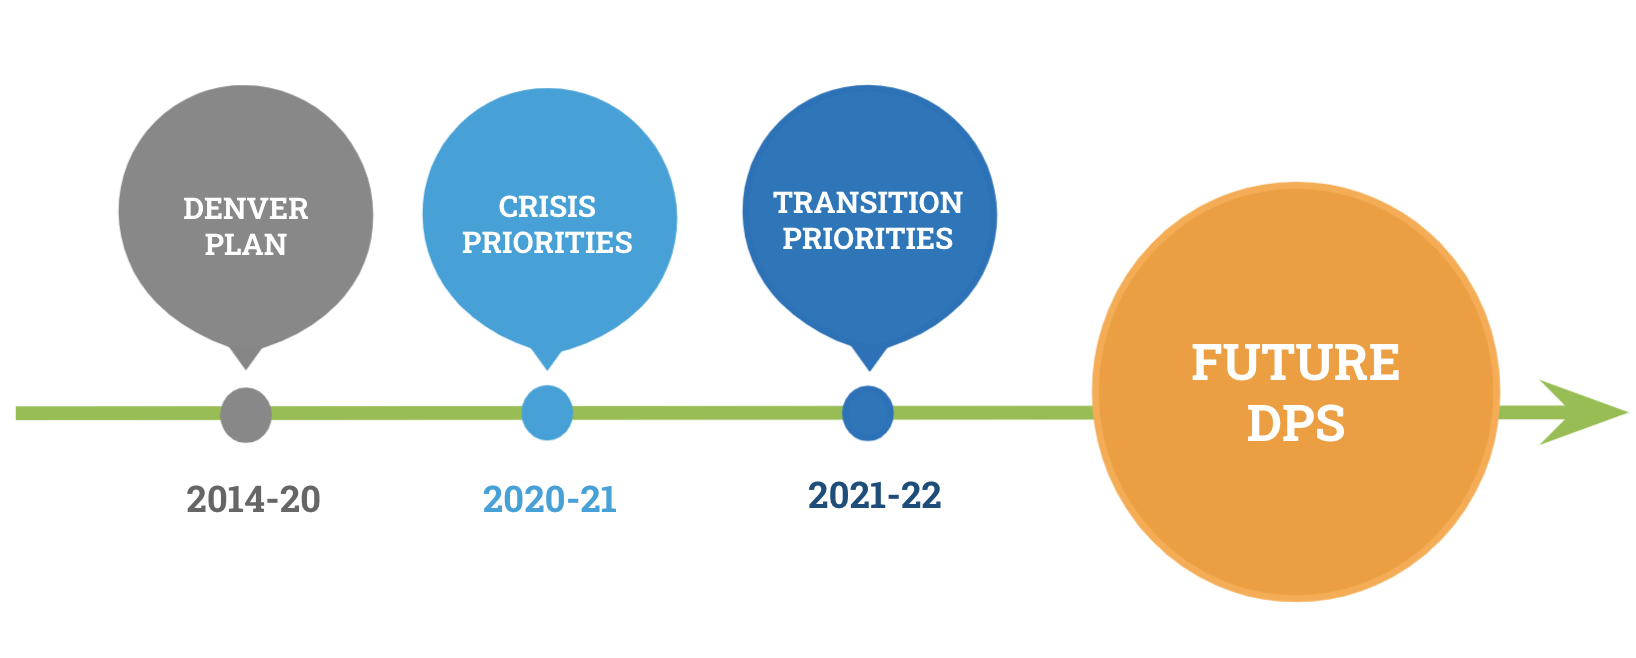 Timeline with four main sections: Denver Plan 2014-2020; Crisis Priorities 2020-21; Transition Priorities 2021-22; Future DPS